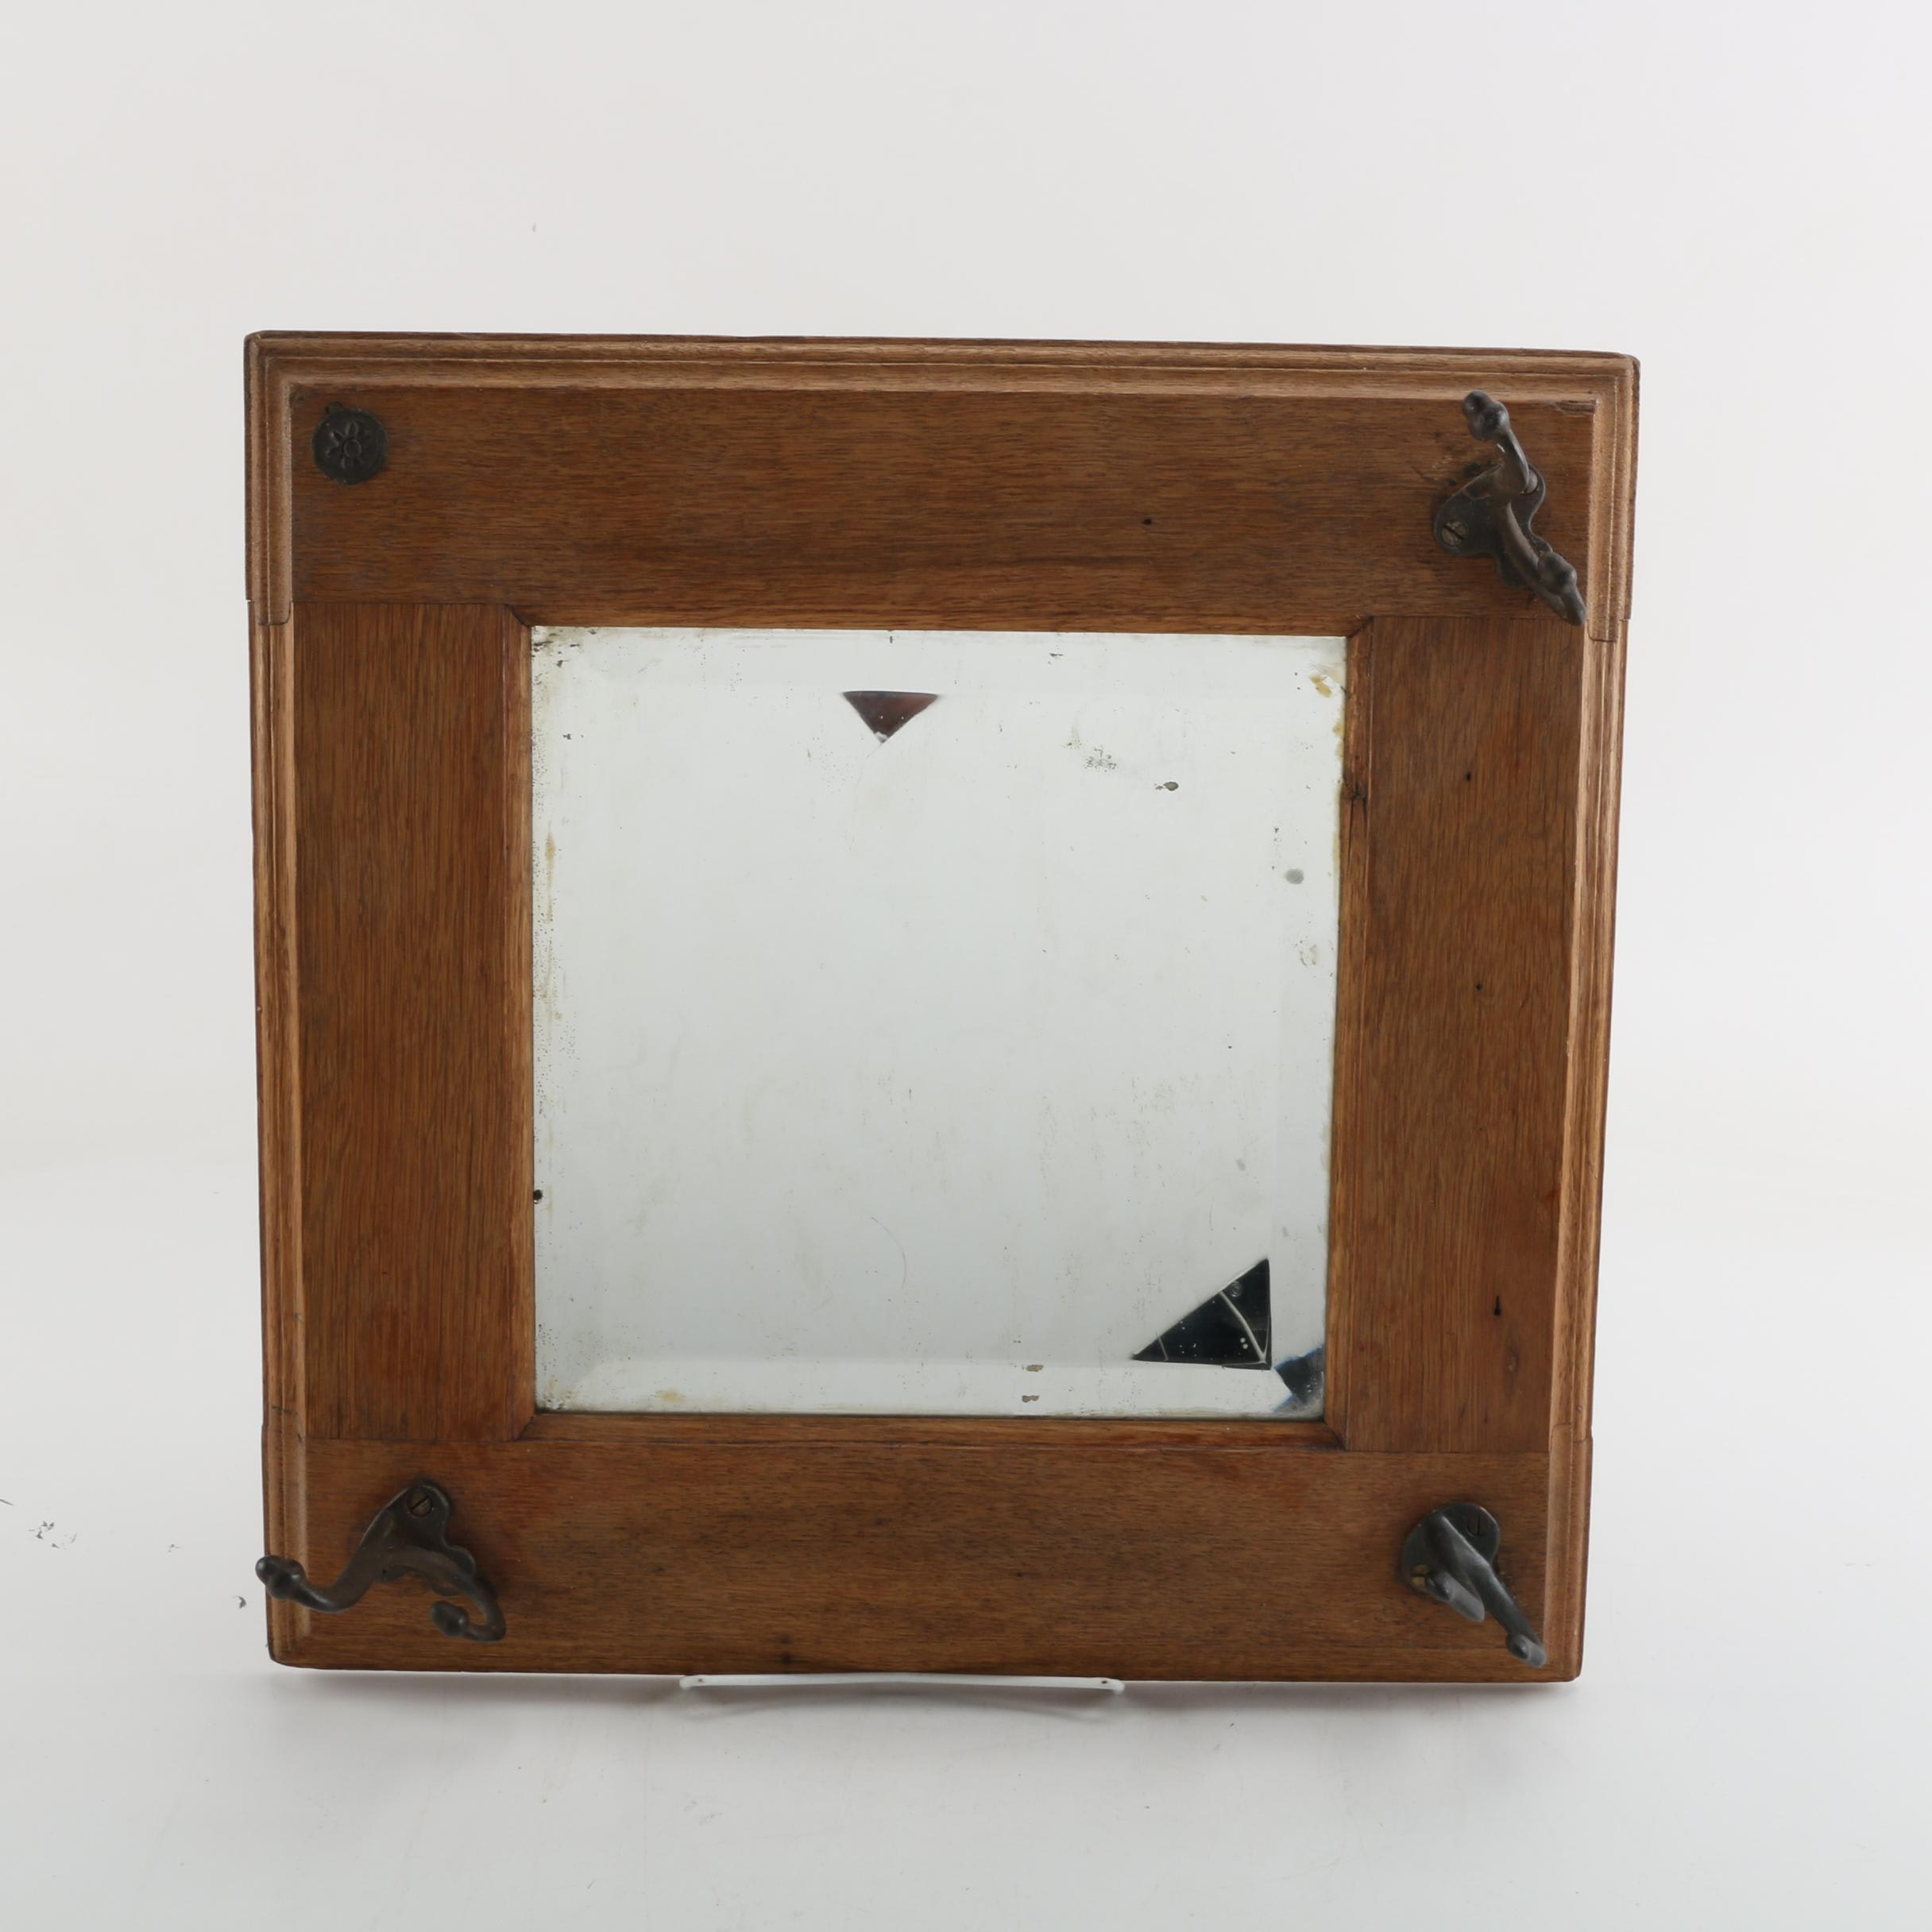 Wood Framed Wall Mirror with Metal Hangers